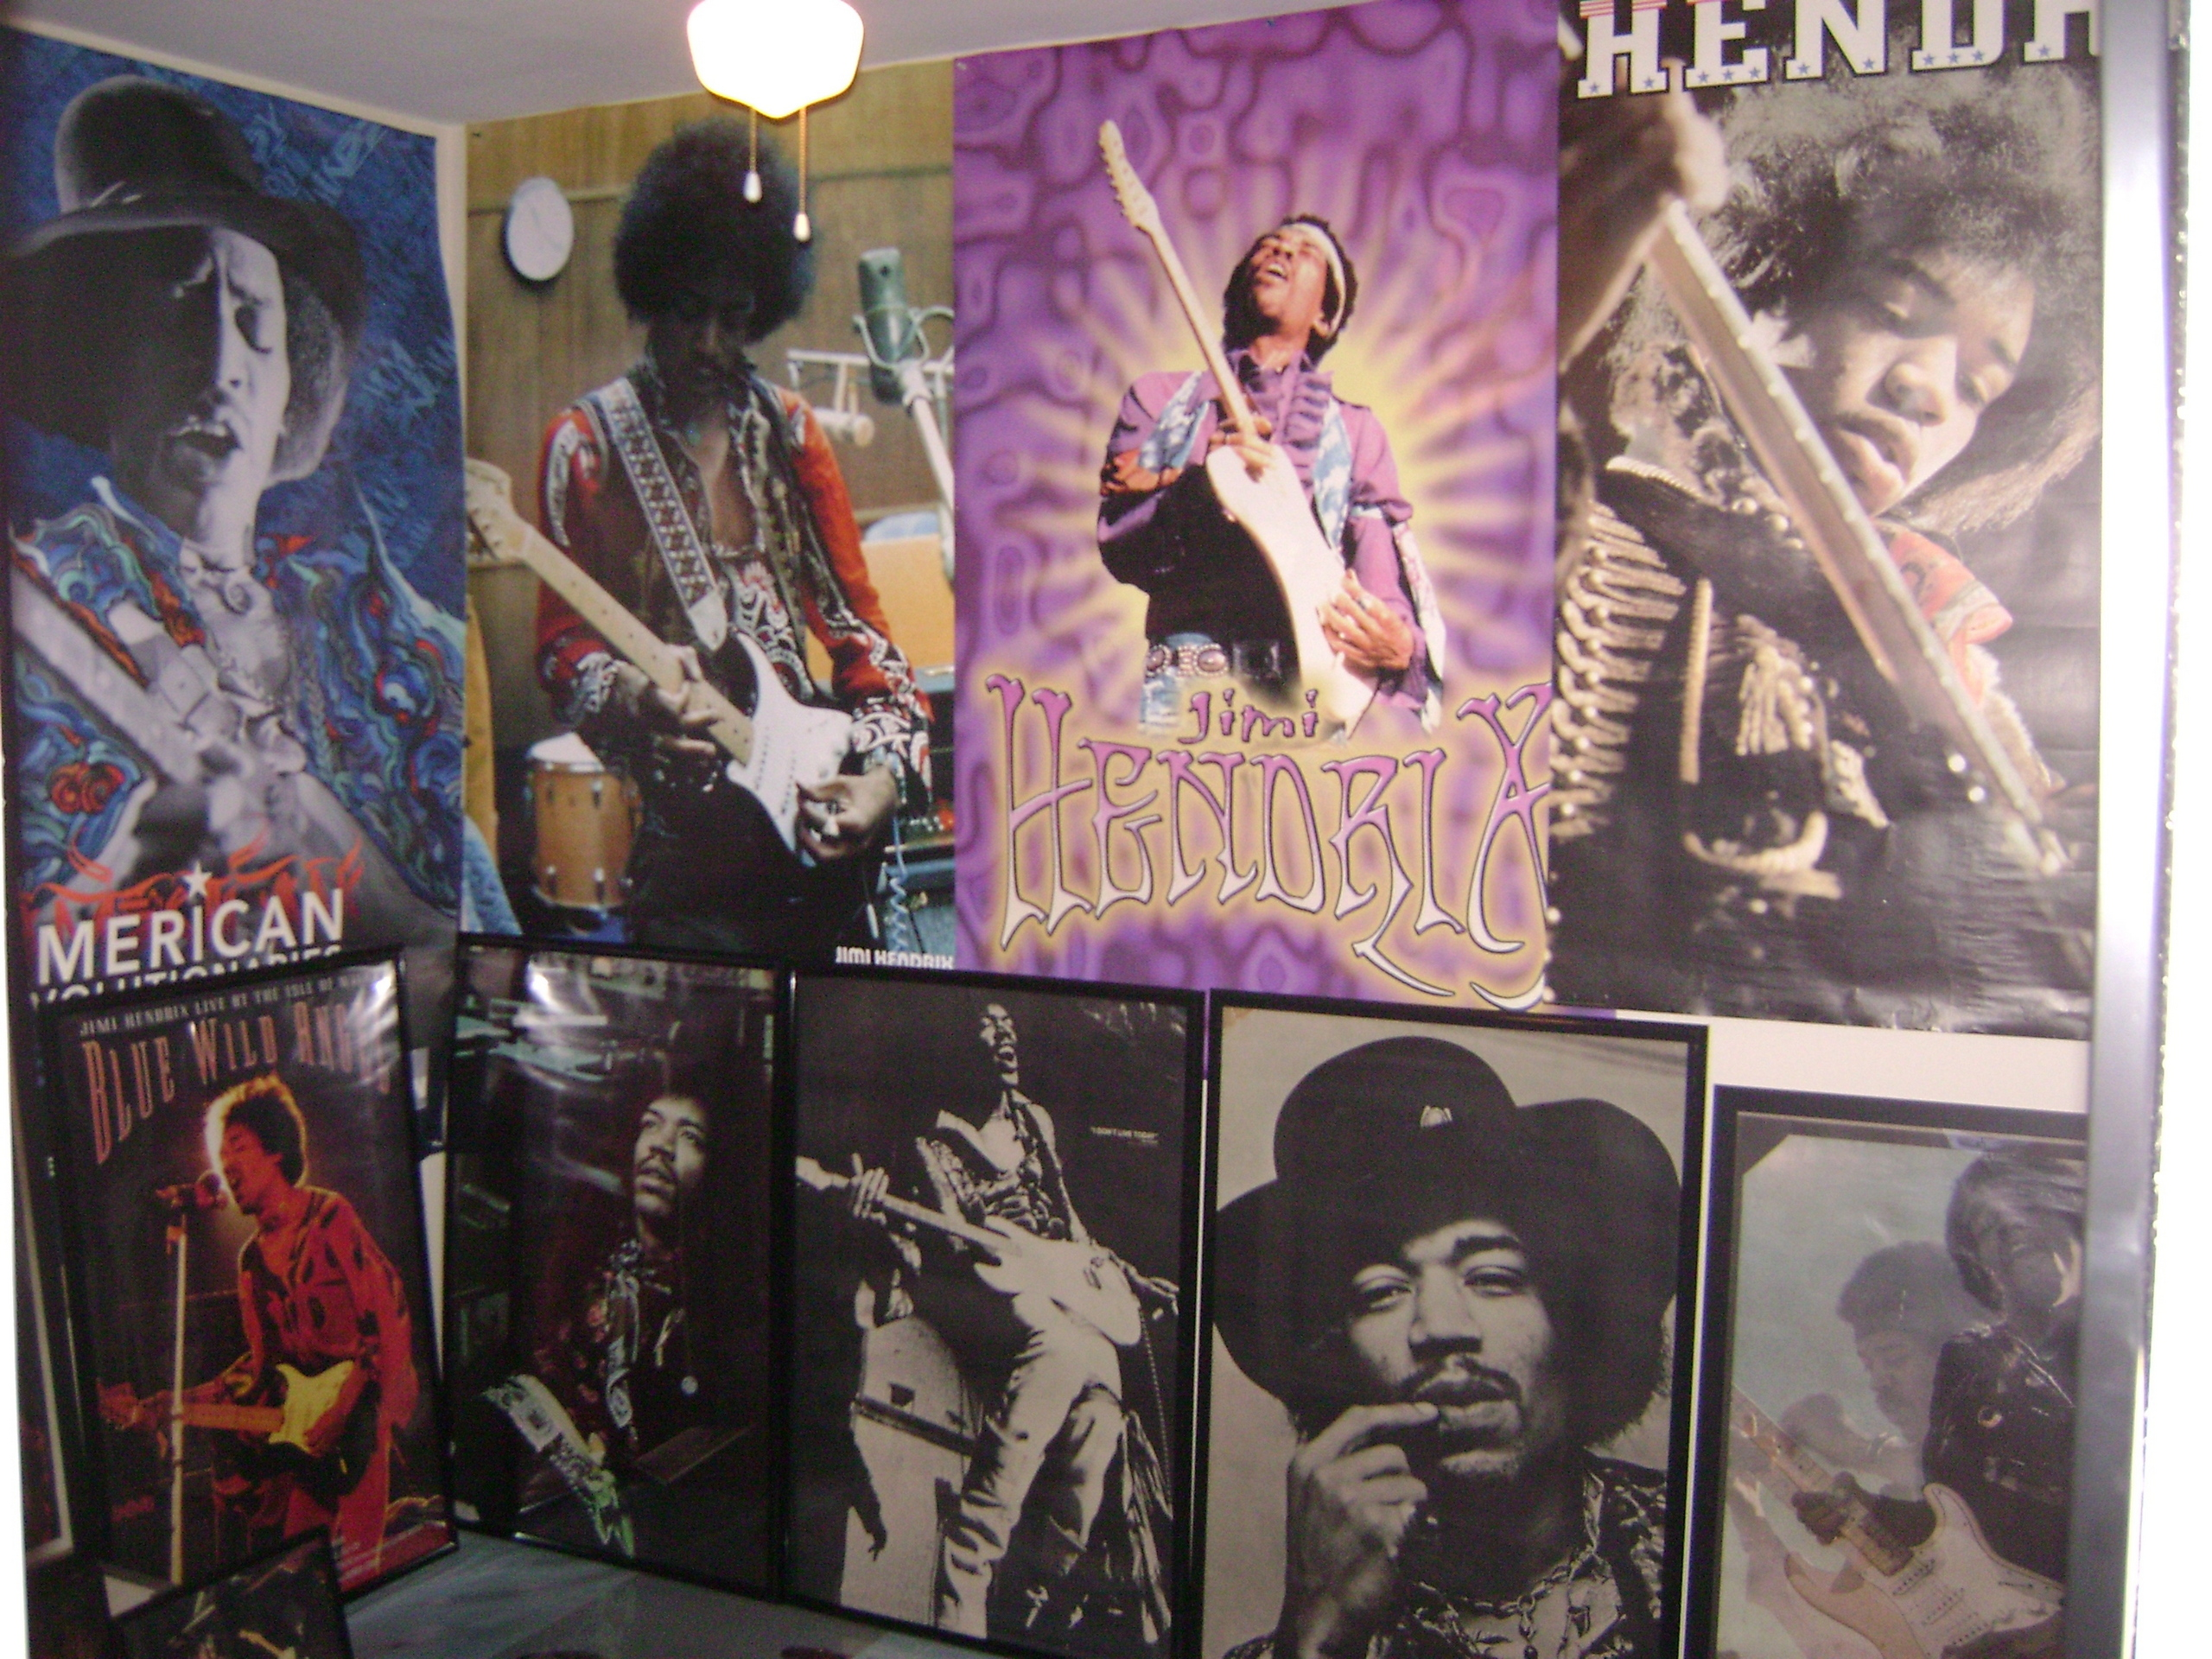 release date 7c87e 9b89c Jimi Hendrix images hendrix collection HD wallpaper and background photos